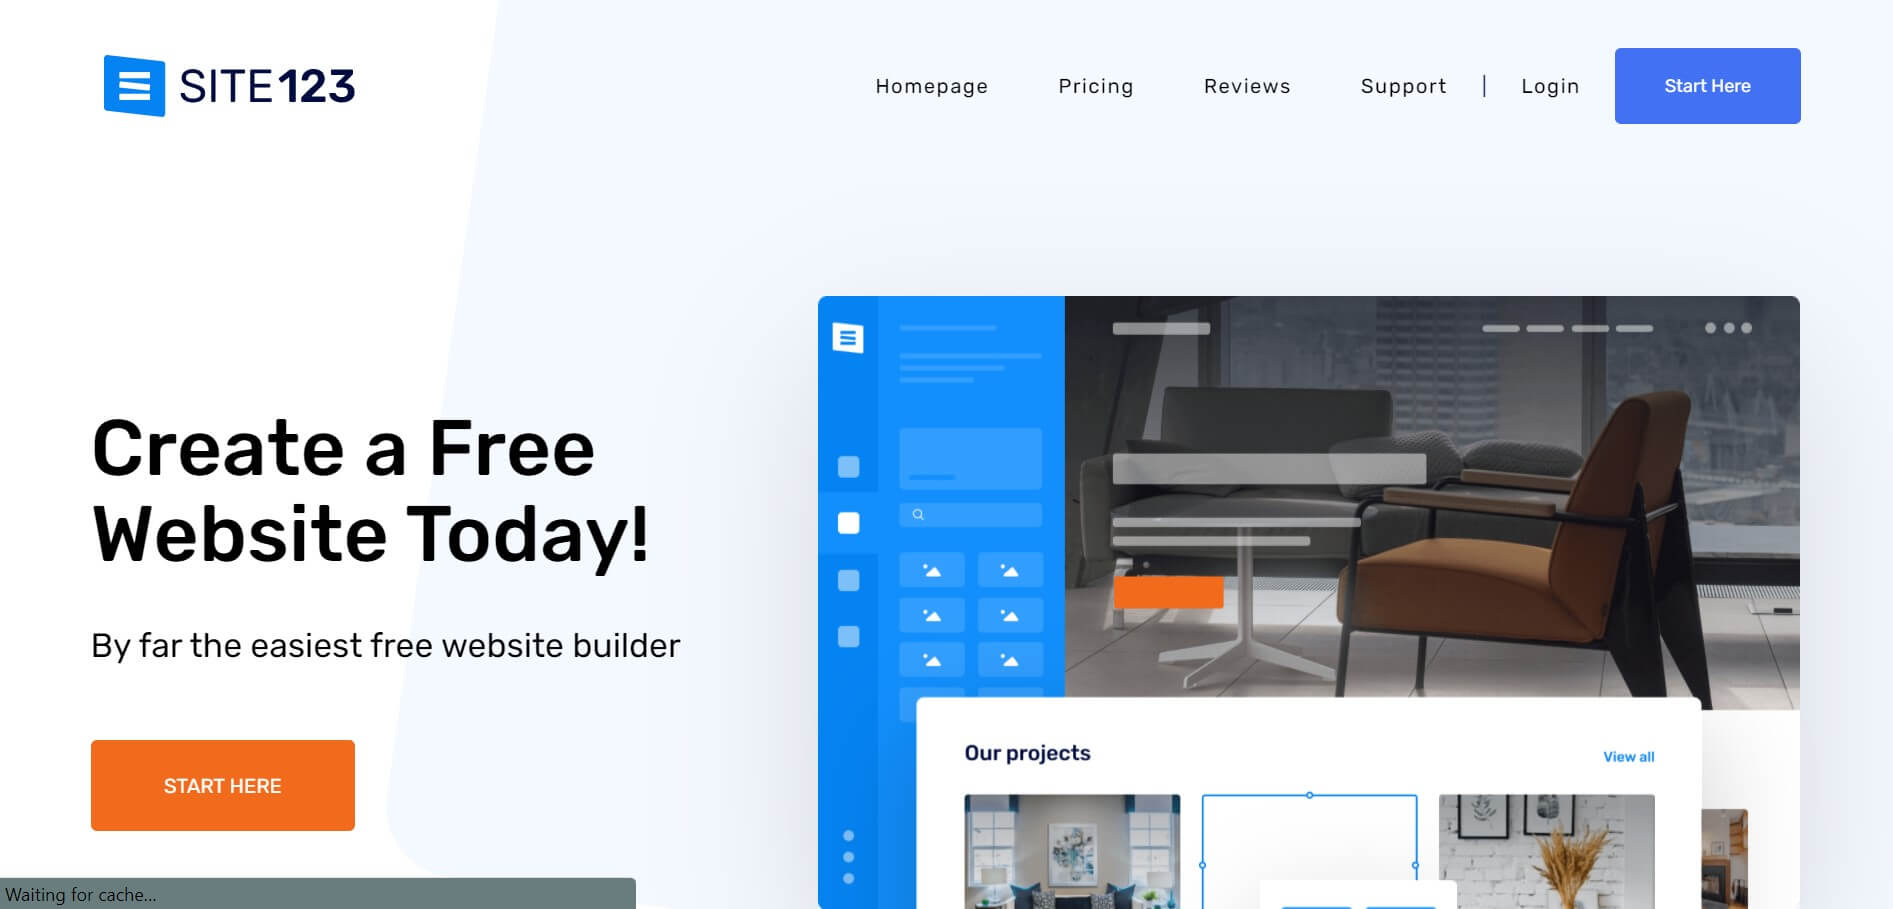 Site123 website builder example